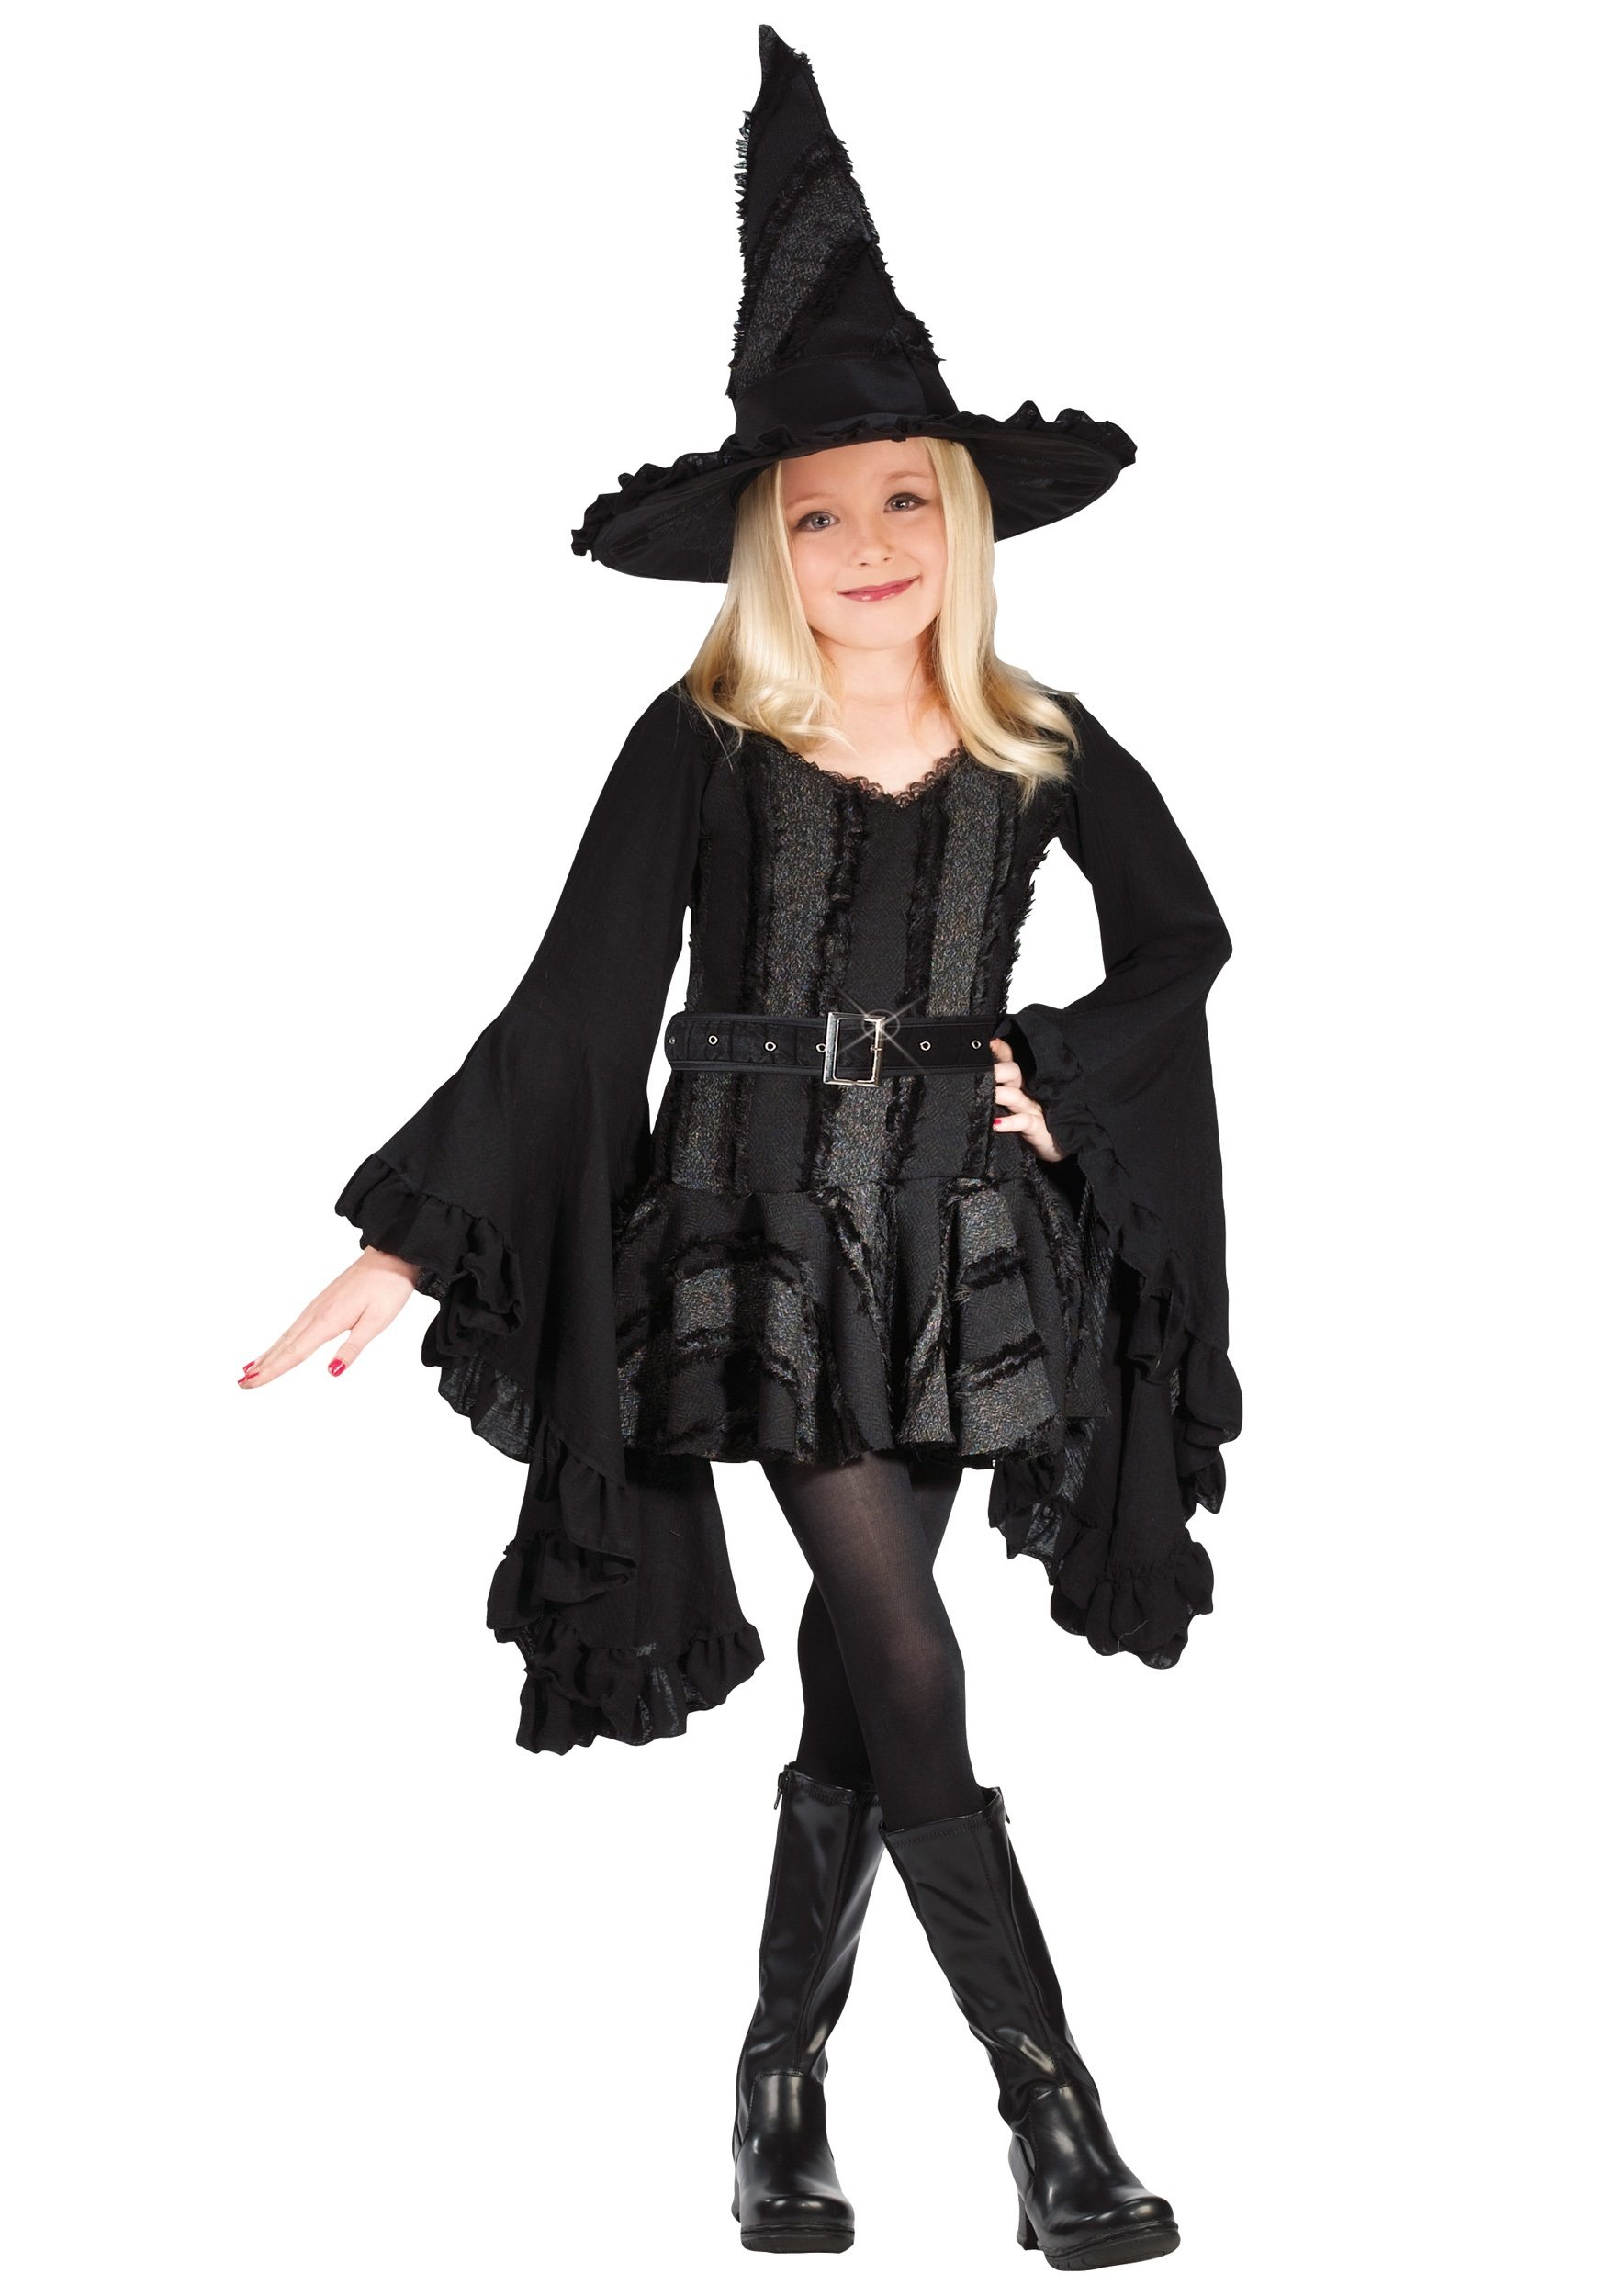 Kids Wicked Witch Costume  sc 1 st  Halloween Costume & Kids Wicked Witch of the West Costume - Girls Halloween Costumes